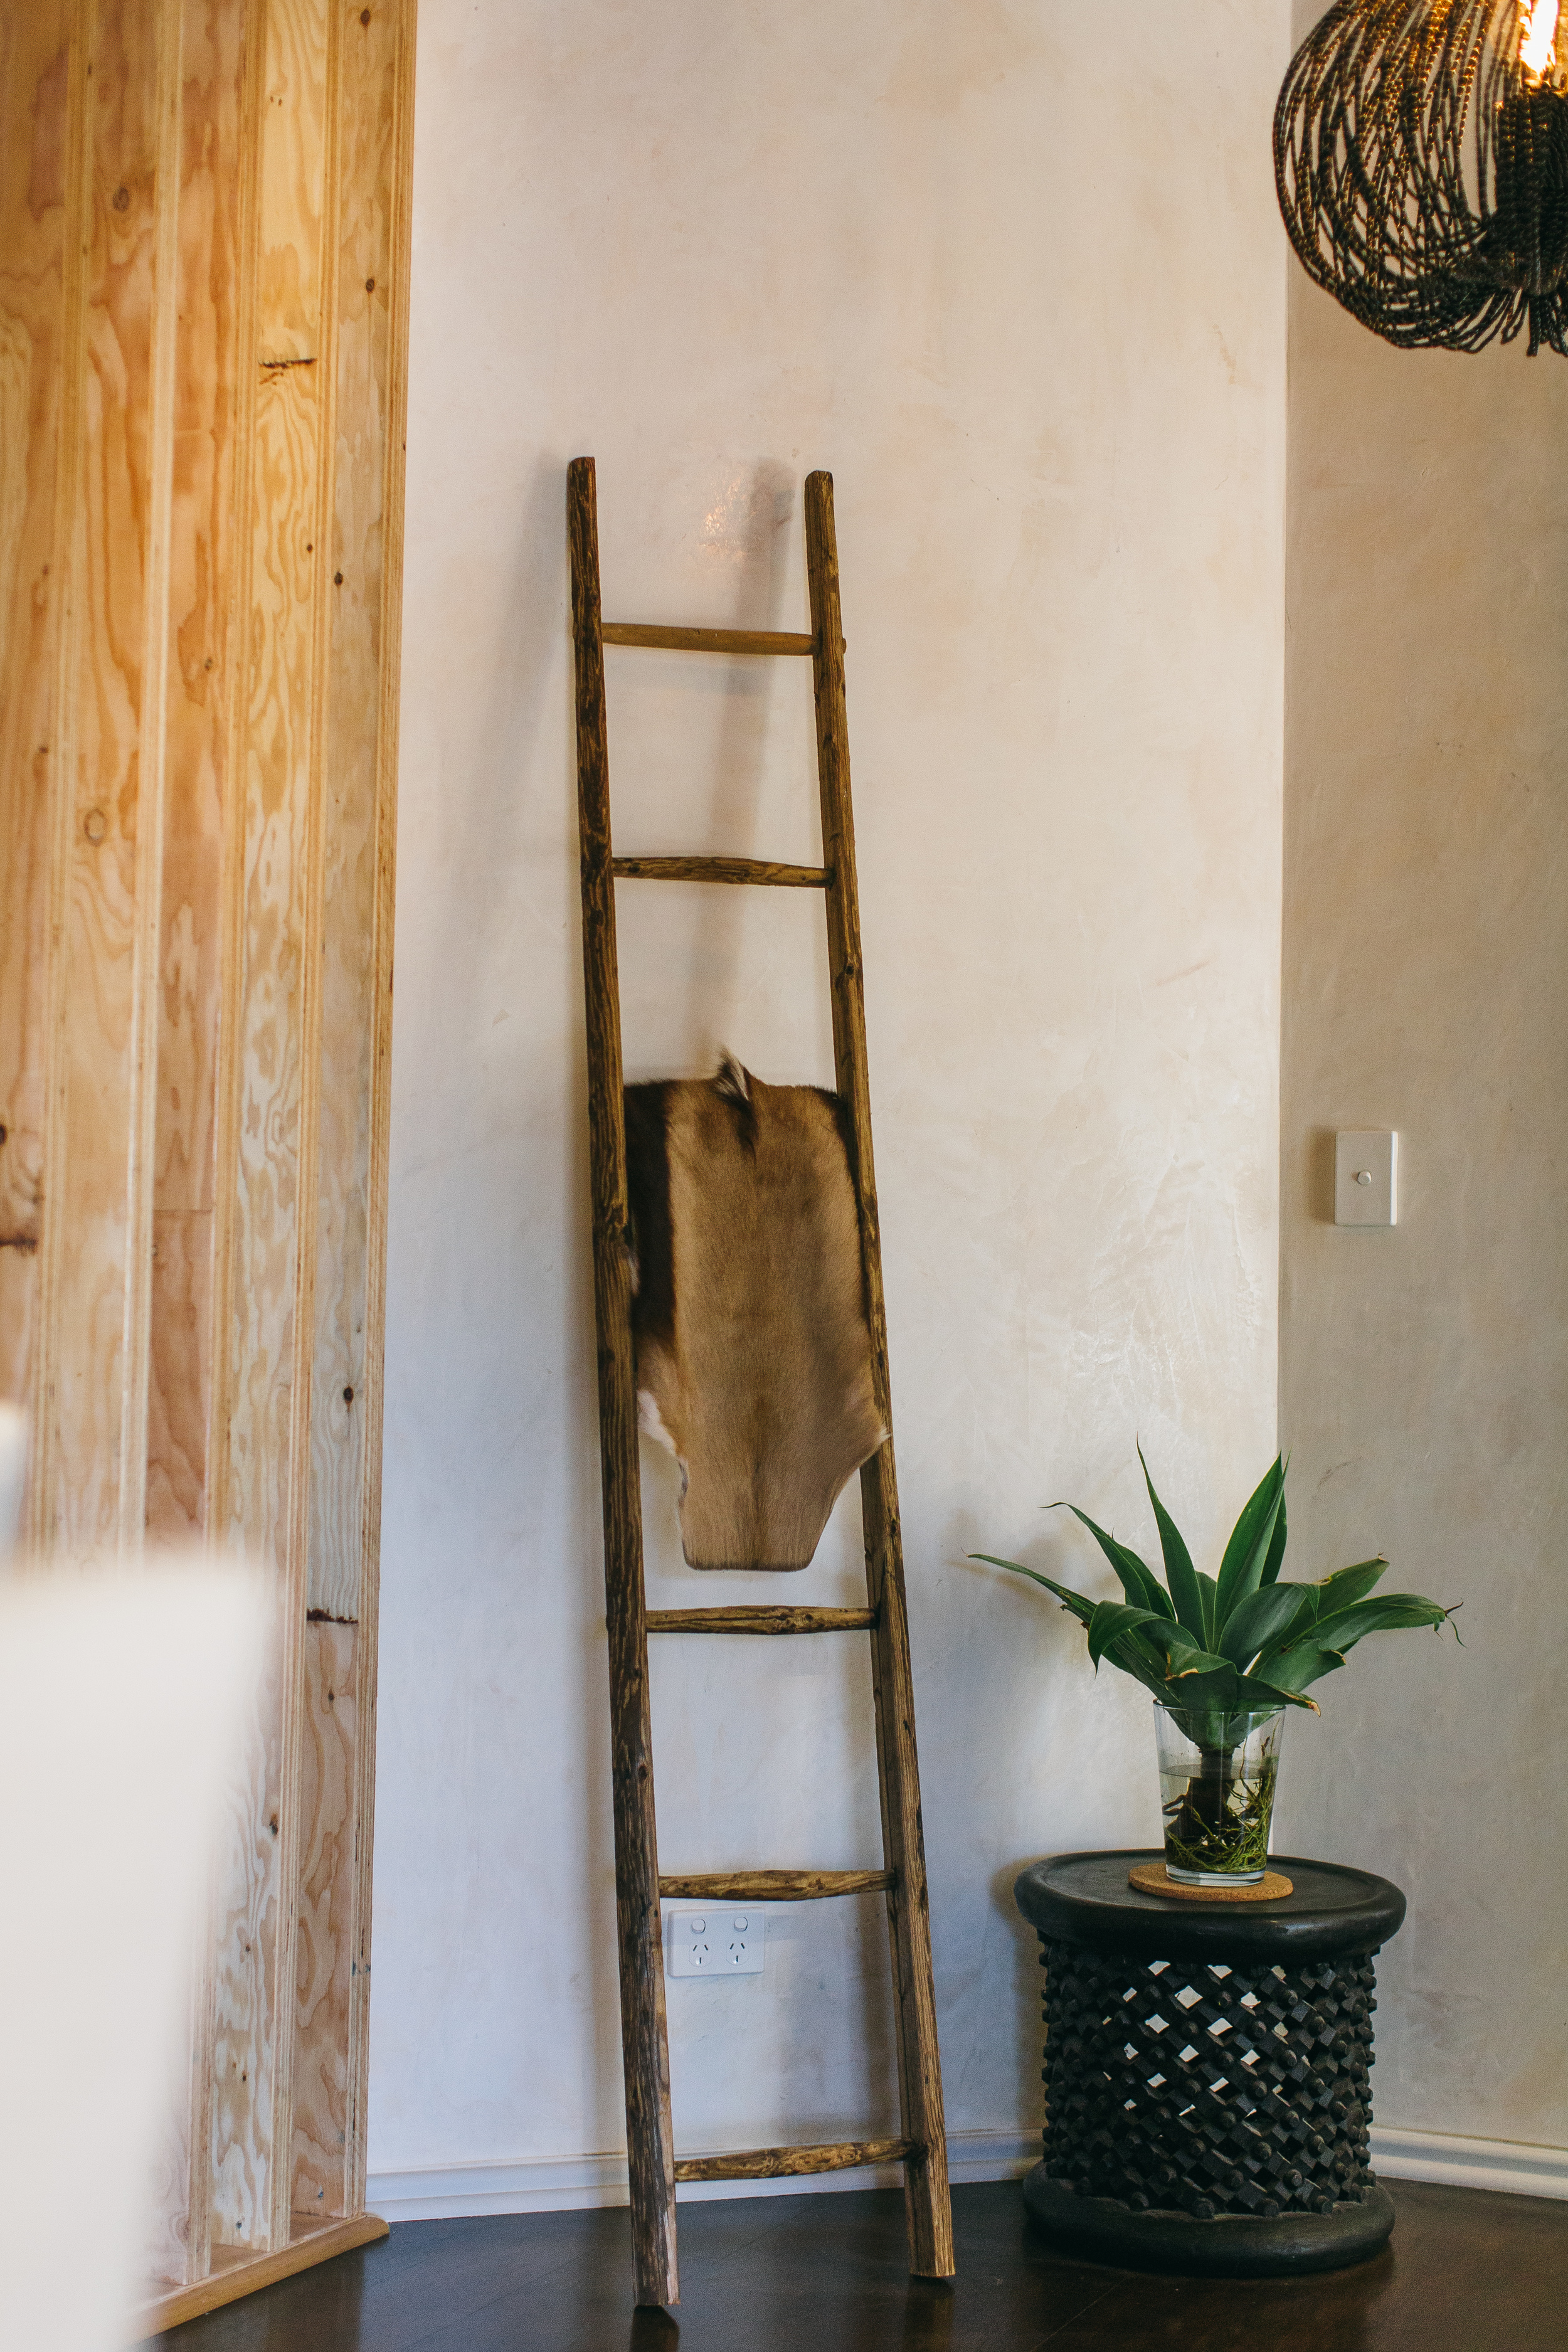 Clay Plaster mixed with rustic timber pieces to create a relaxed, natural feel.